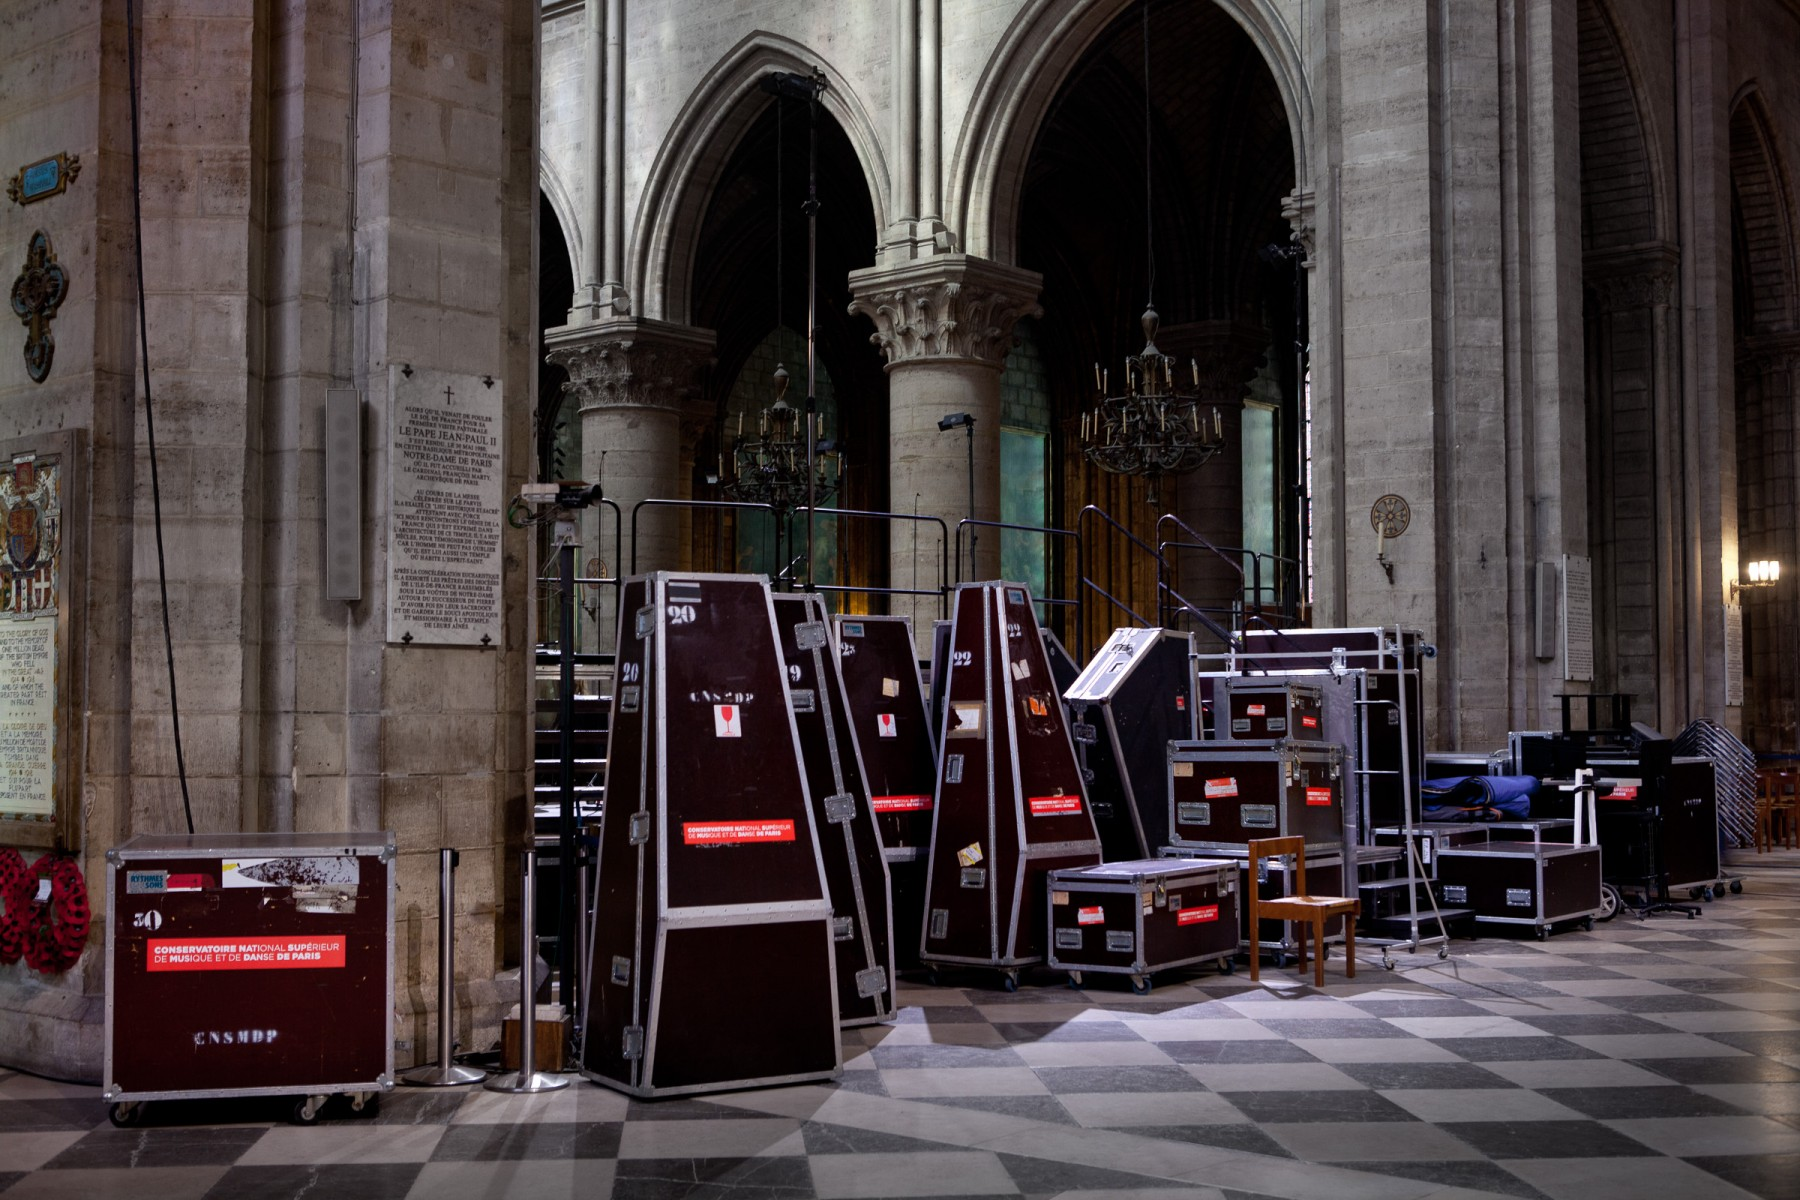 Instrument boxes in Notre Dame.